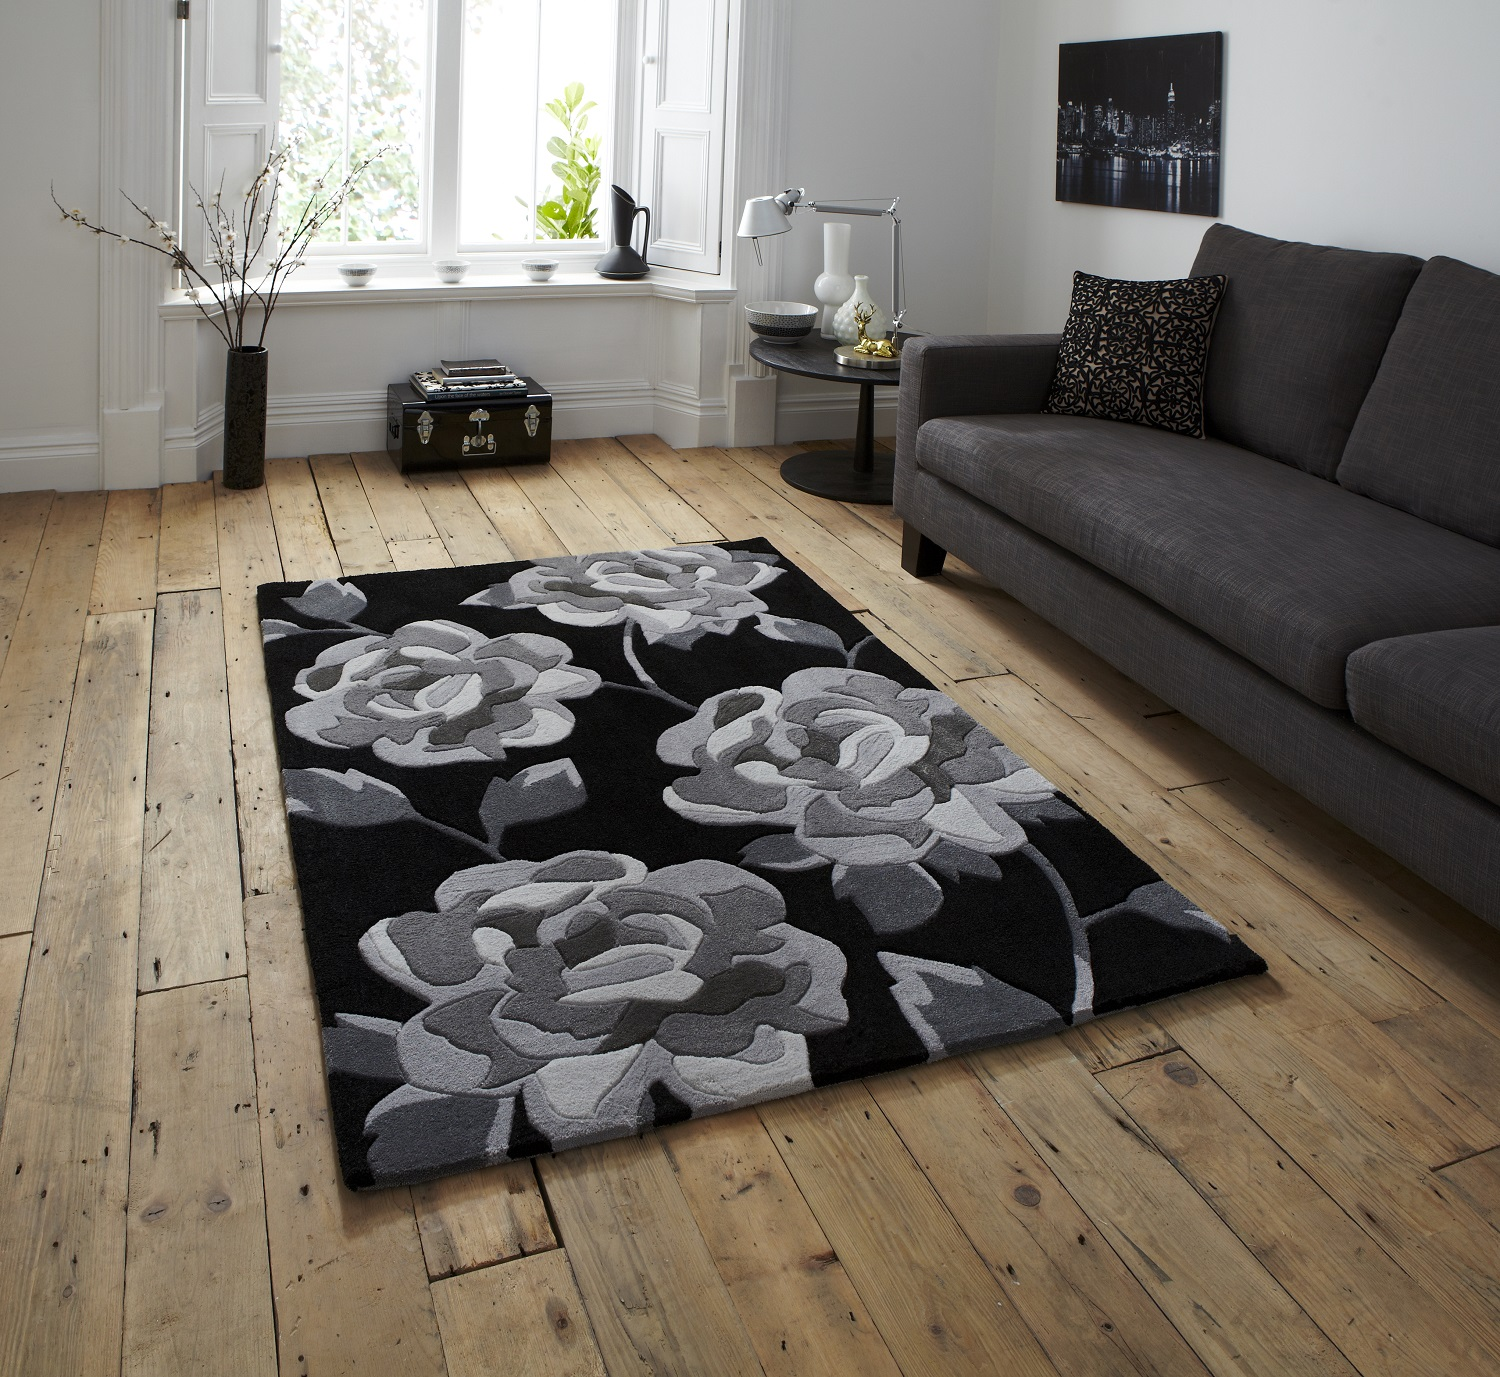 Hand Tufted Large Contemporary Floor Rug Floral Design